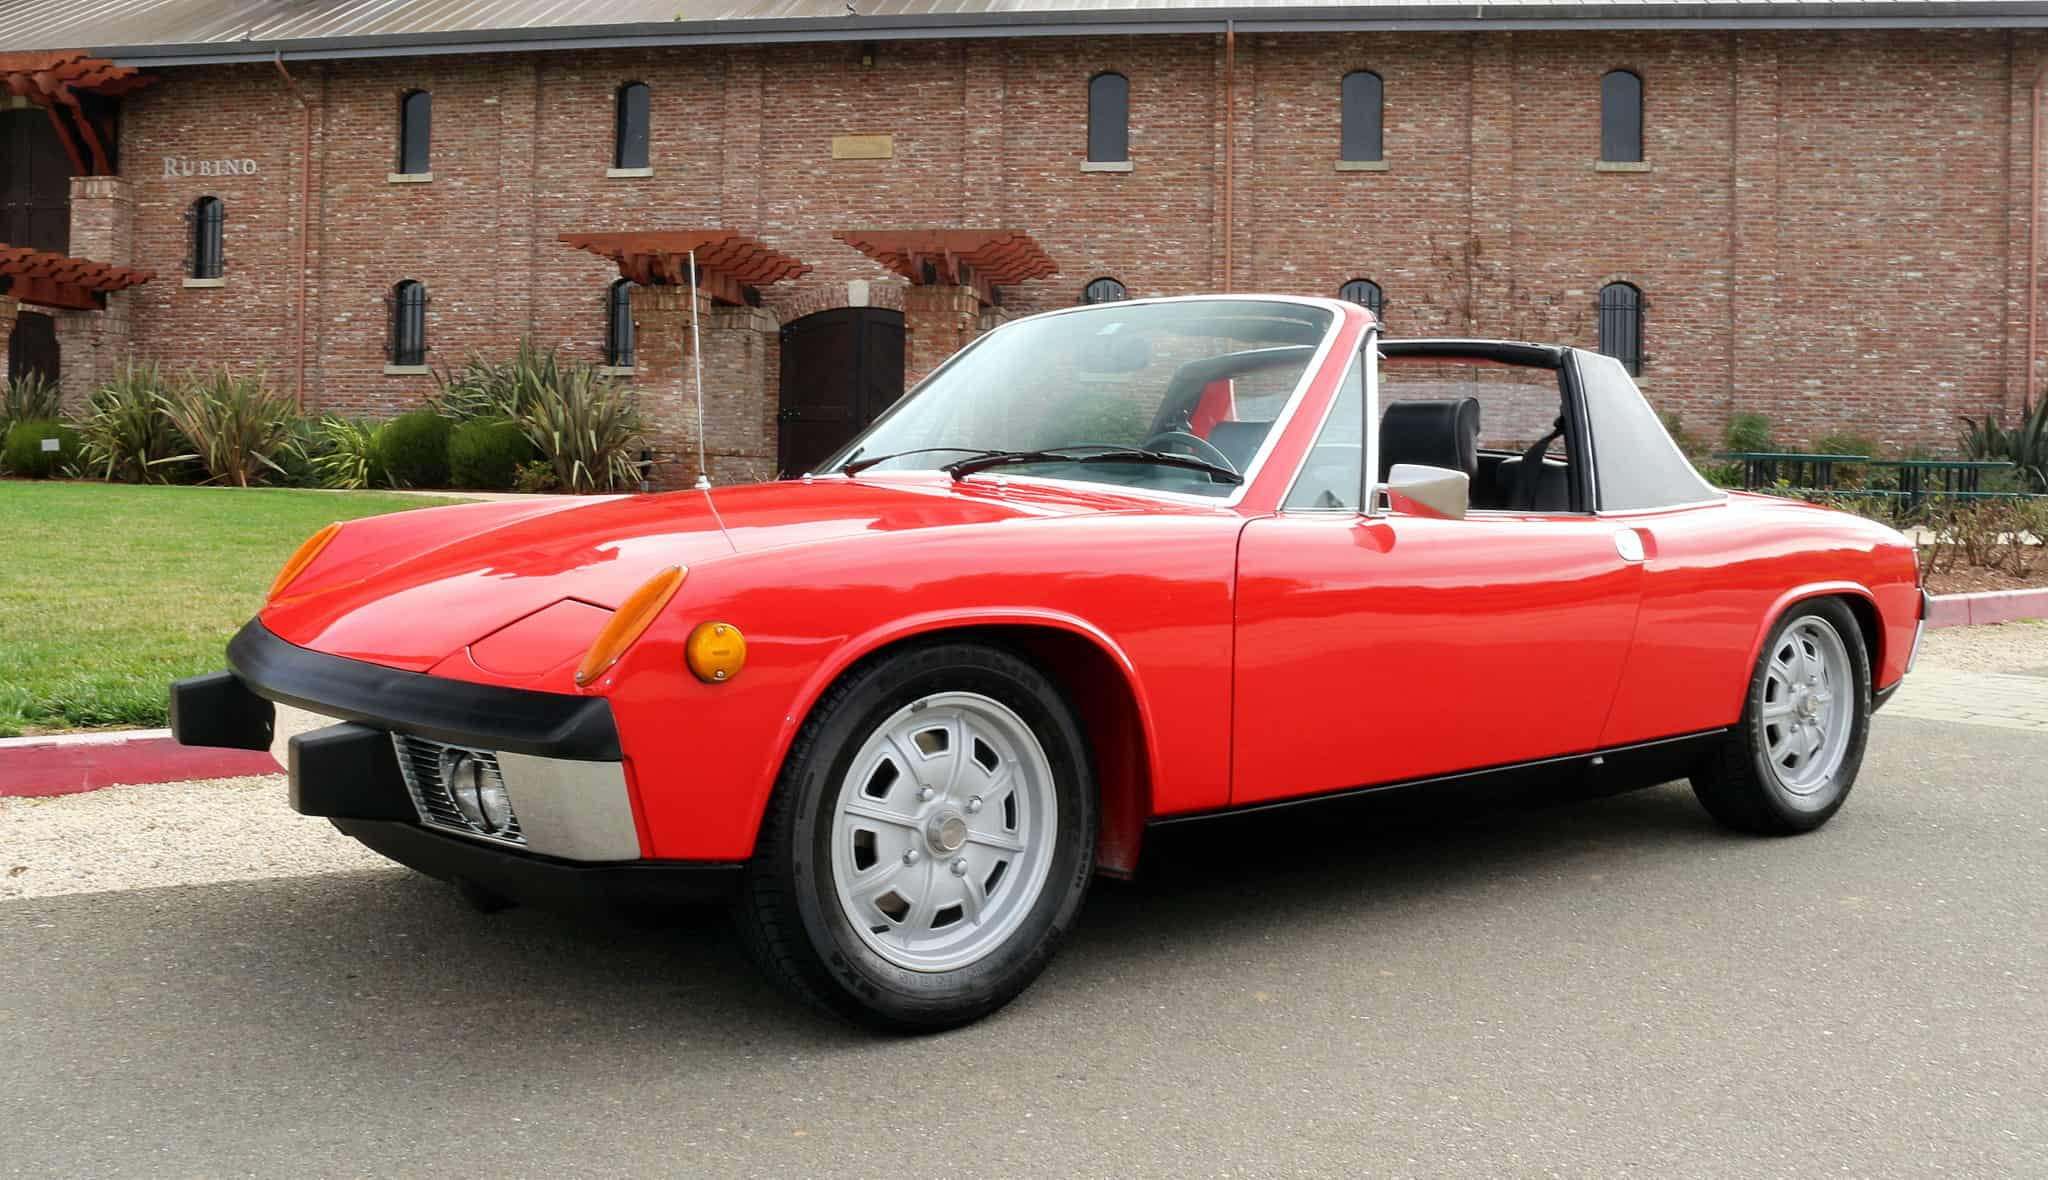 1973 Porsche 914 Targa For Sale Contact Dusty Cars